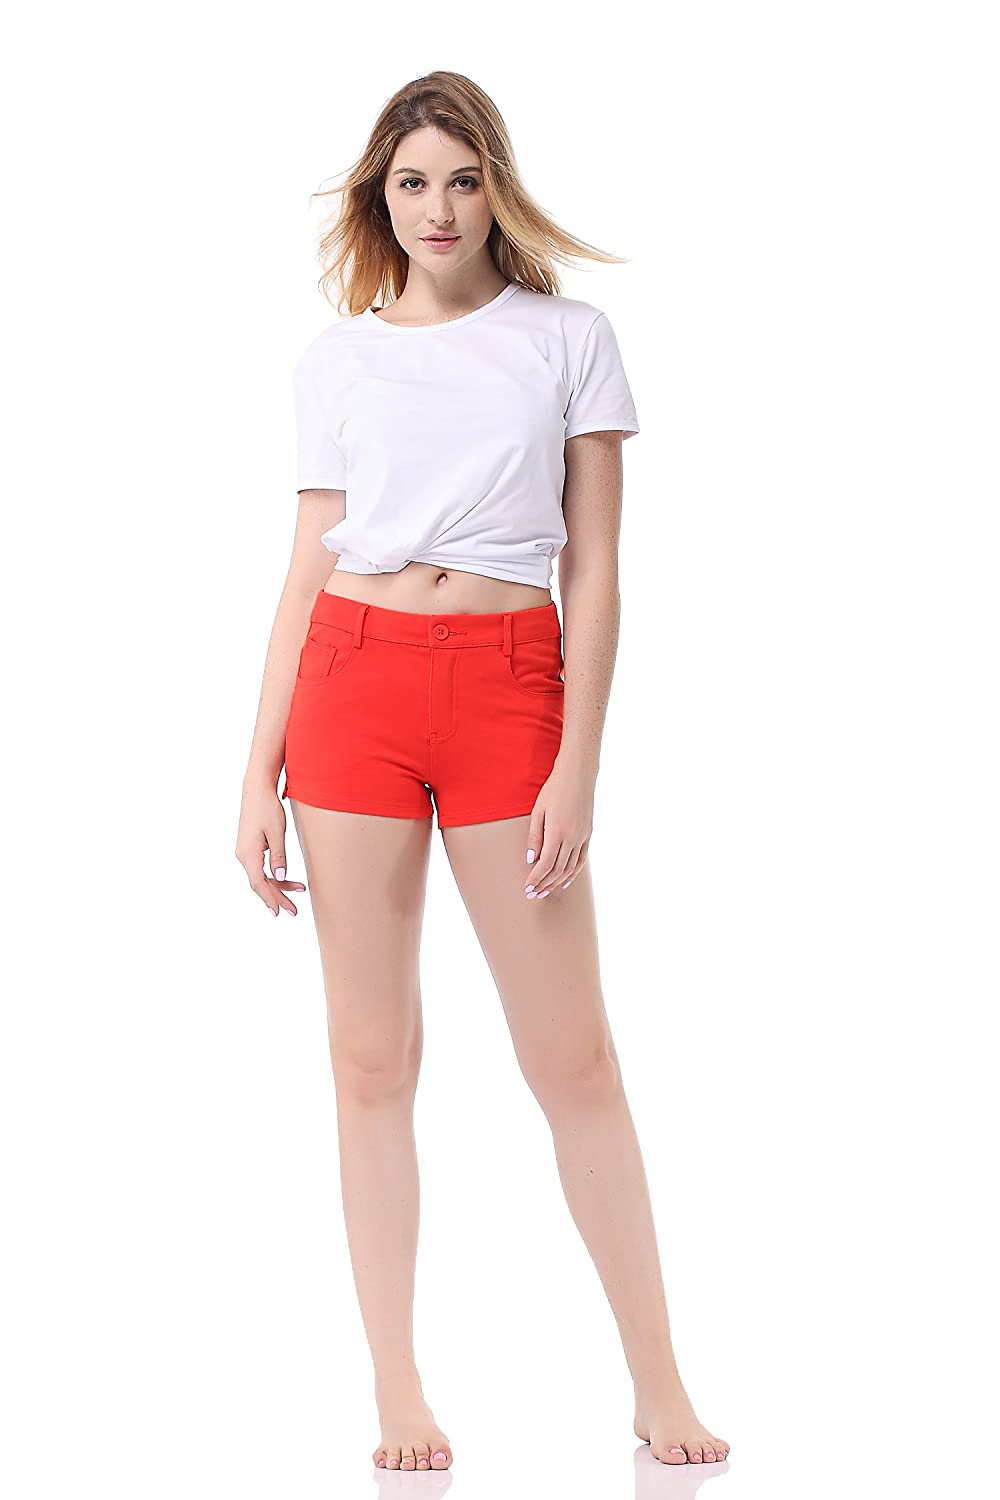 a3efae2aa0 Pau1Hami1ton GP-02 Womens Bermuda Shorts Solid Summer Color Stretch Fitted  Relaxed Flat Hot Walking Pants ...